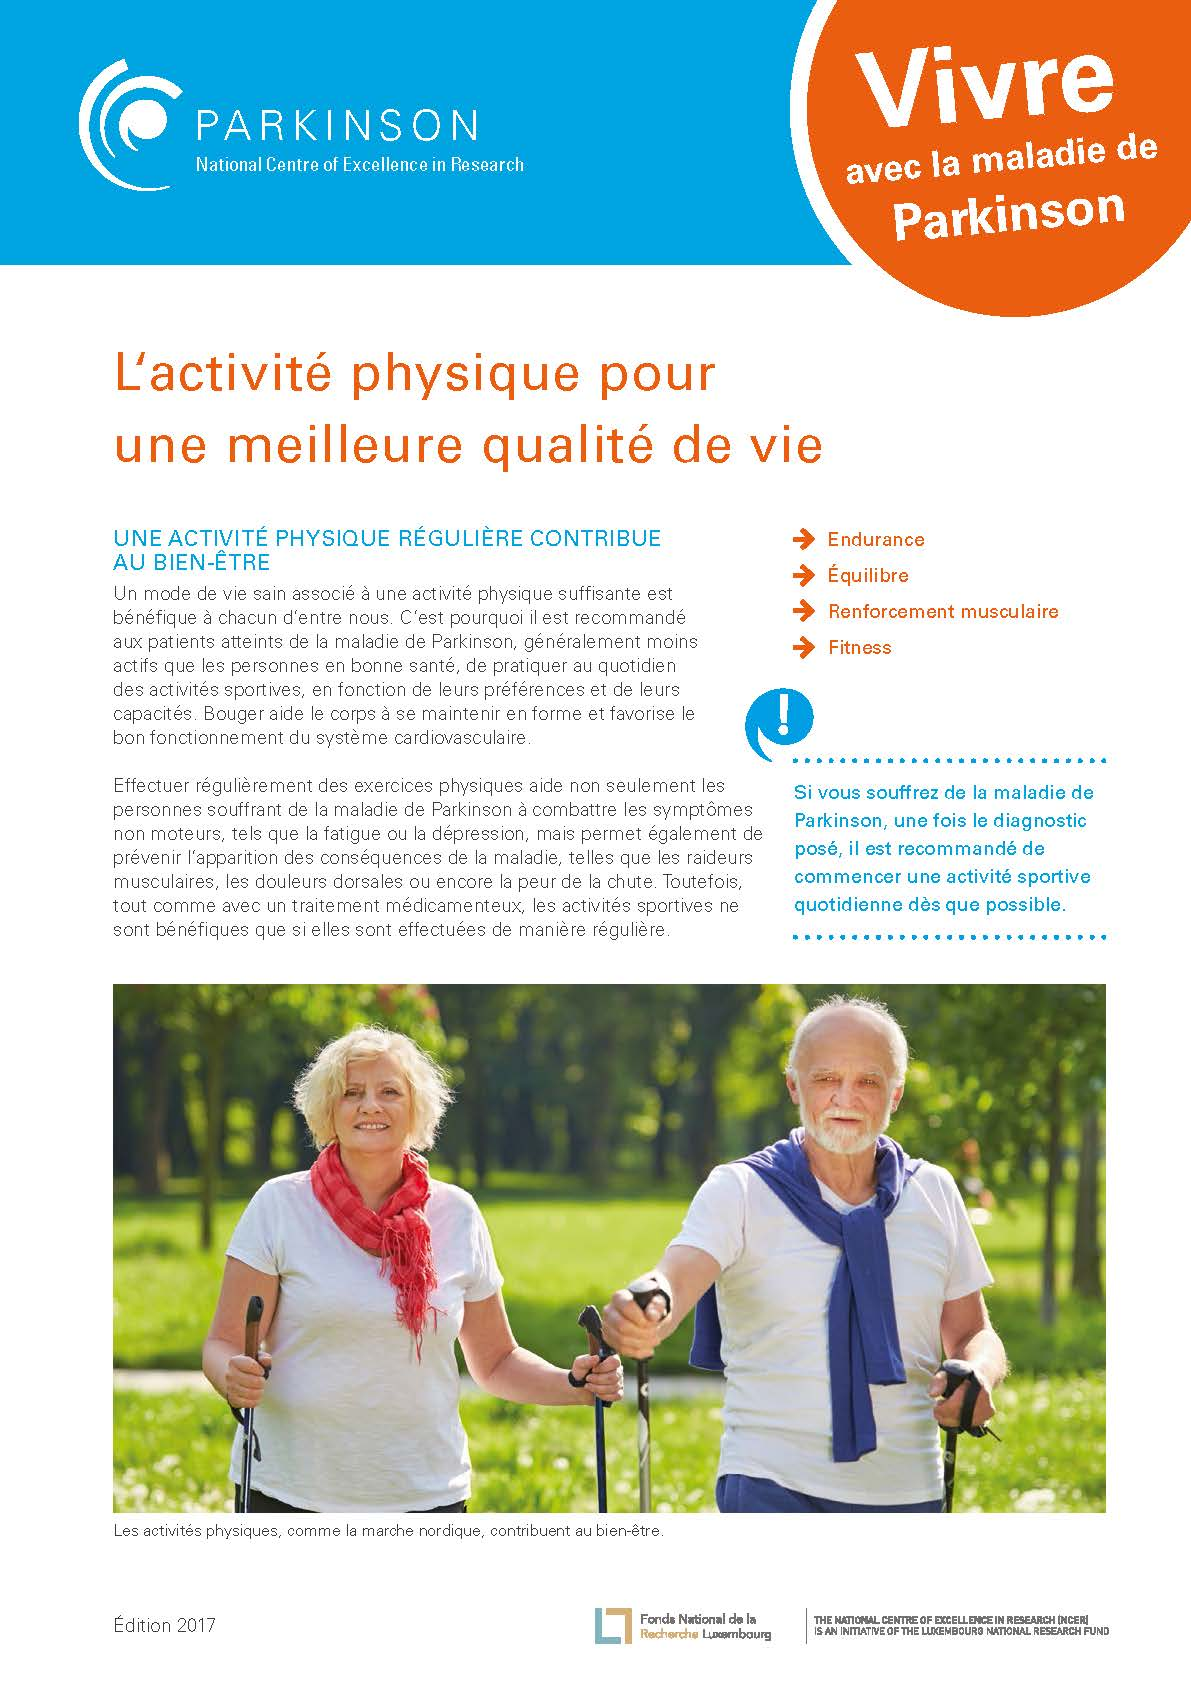 fact sheet - la maladie de Parkinson - activite physique